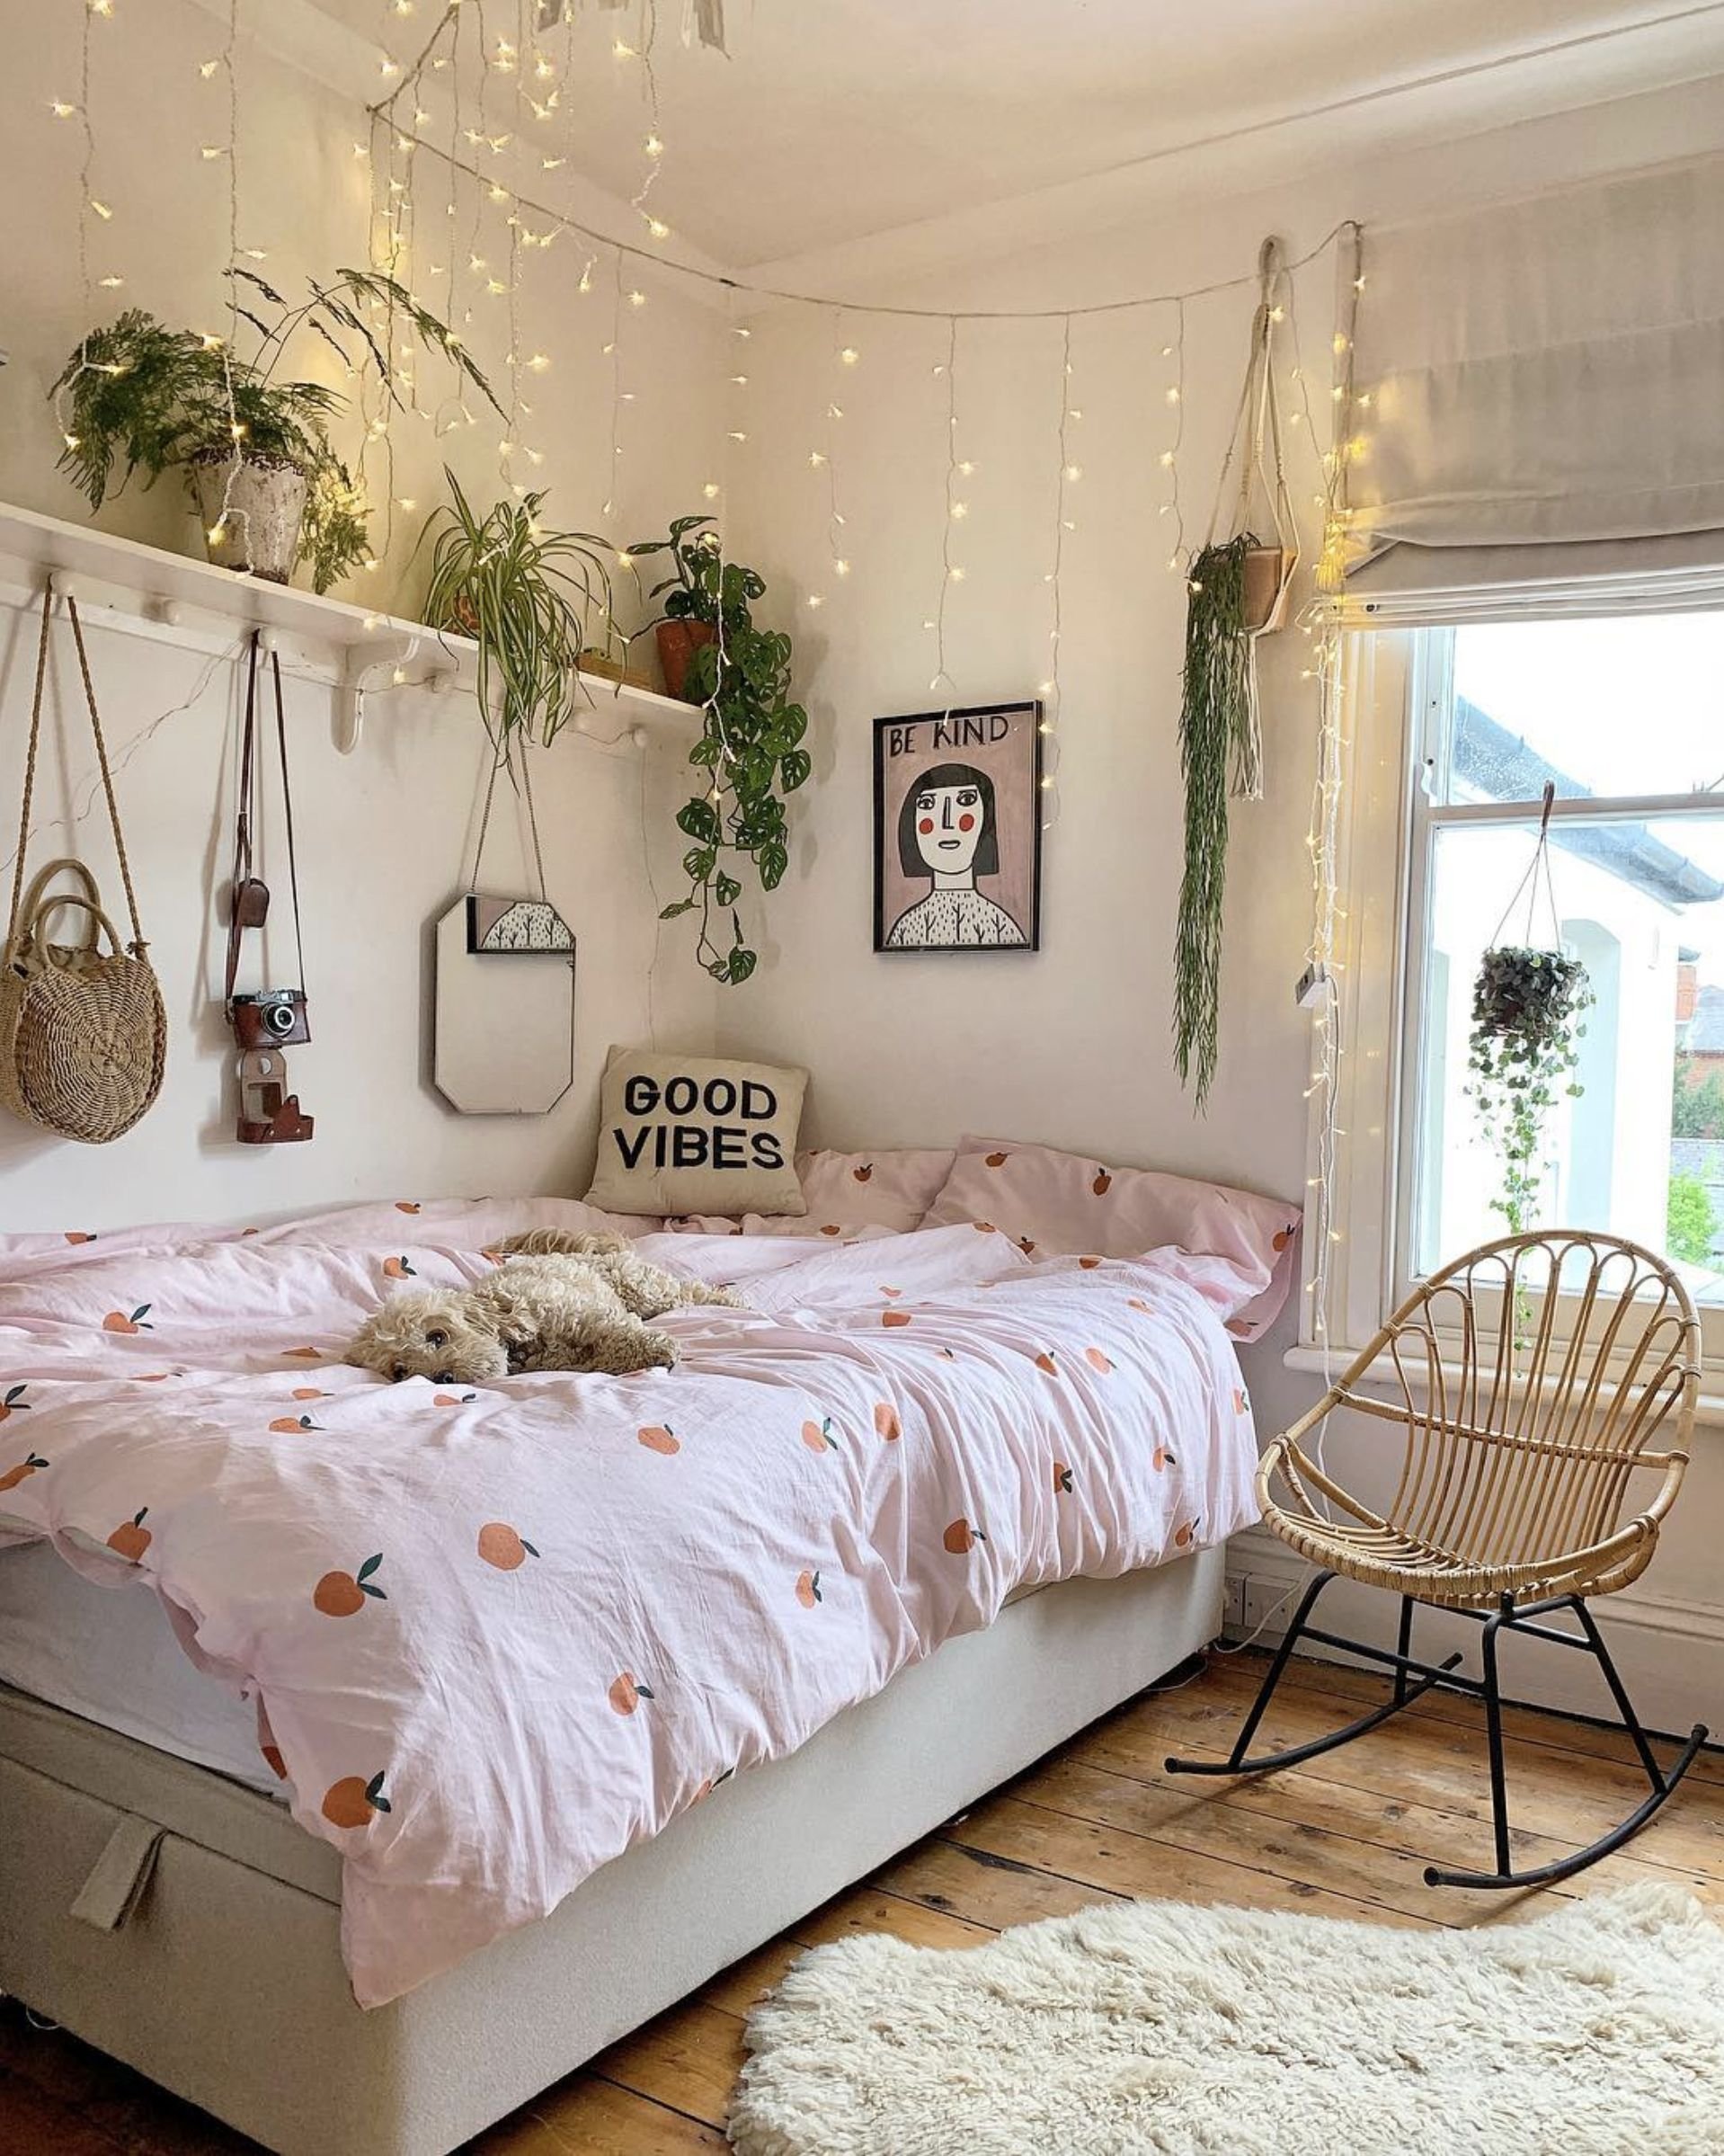 We Love This Cozy Corner In The Bedroom By Deecampling Click The